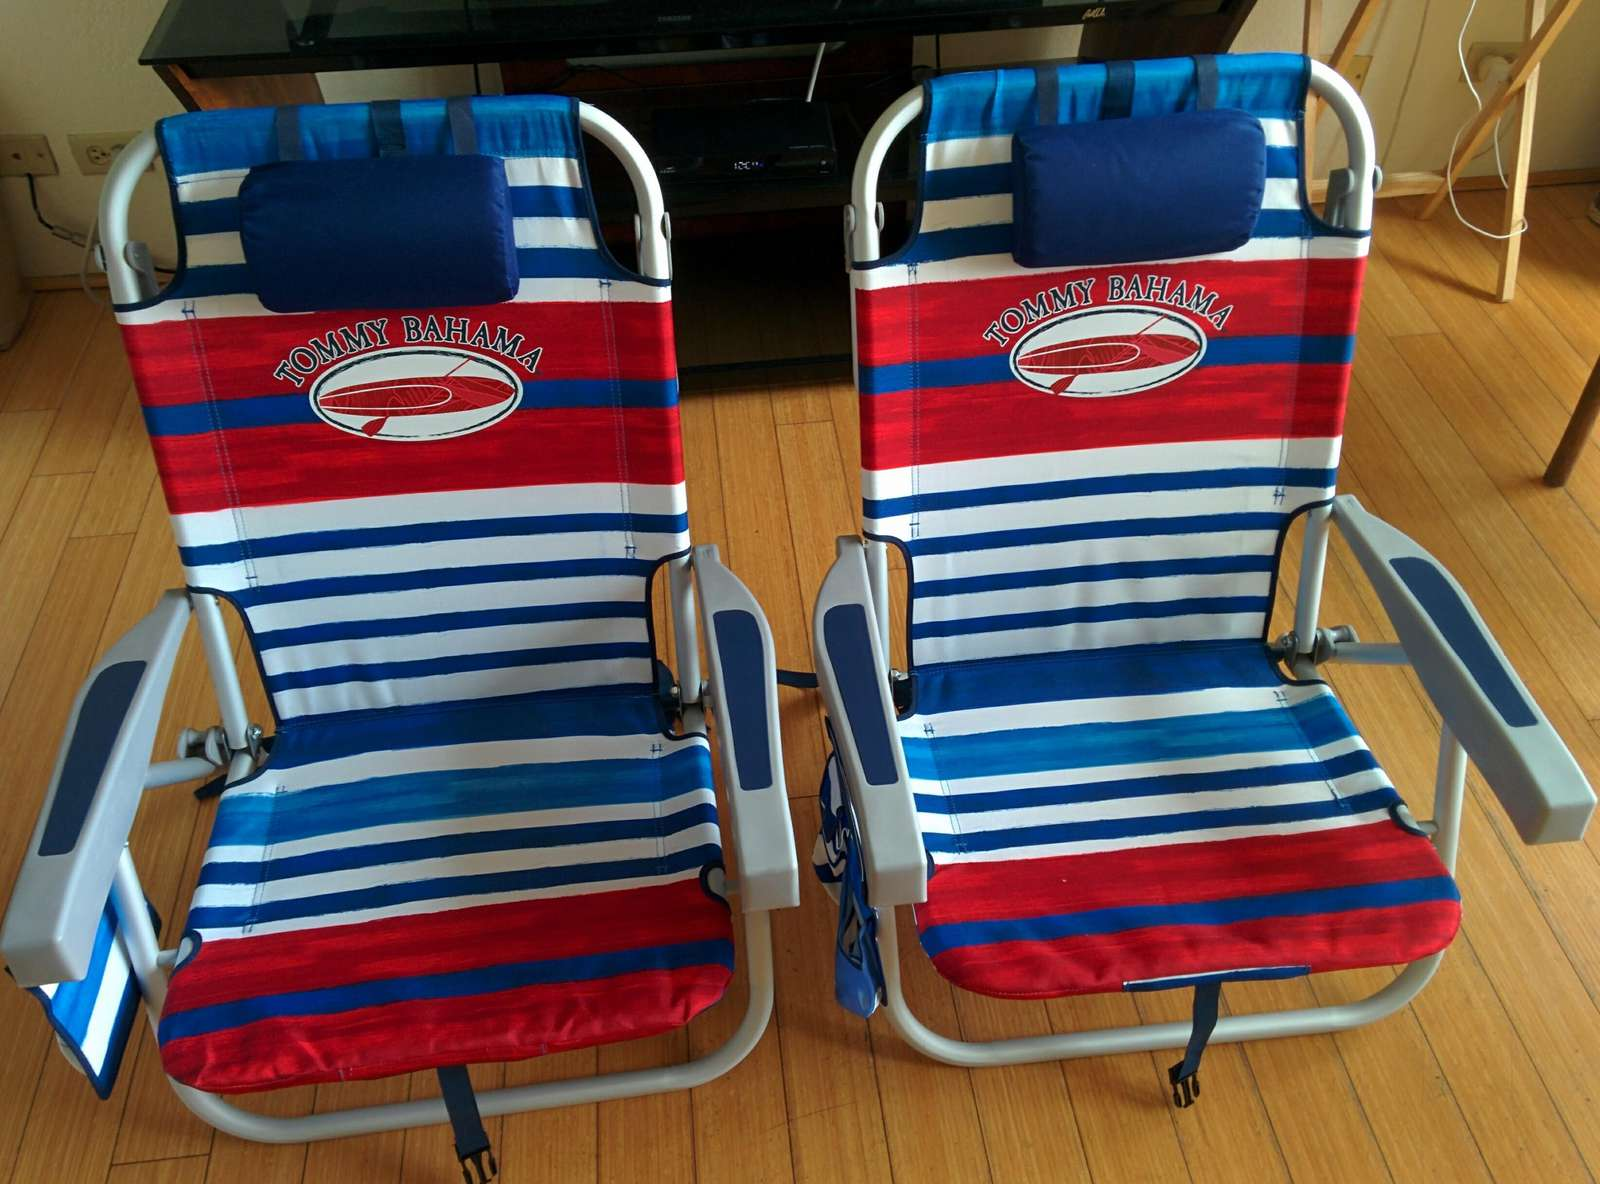 We provide 2 backpack beach chairs.